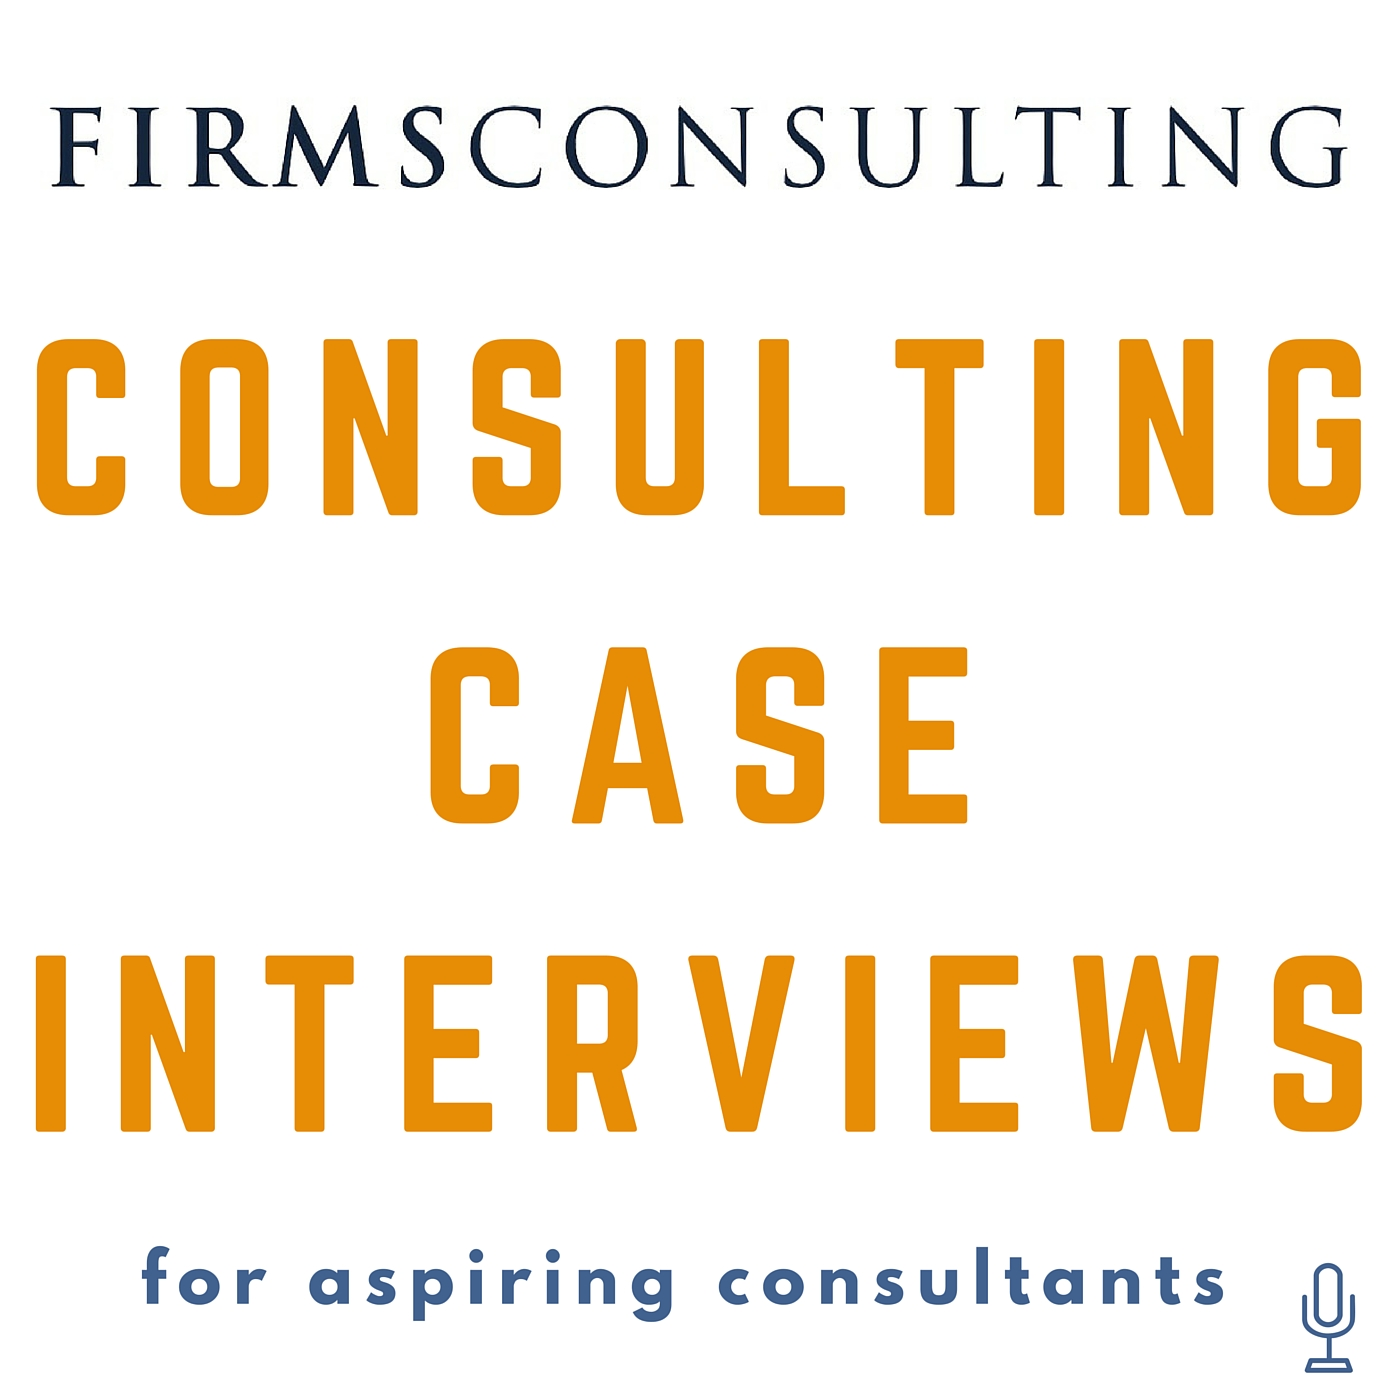 public sector consulting case interview preparation feed image